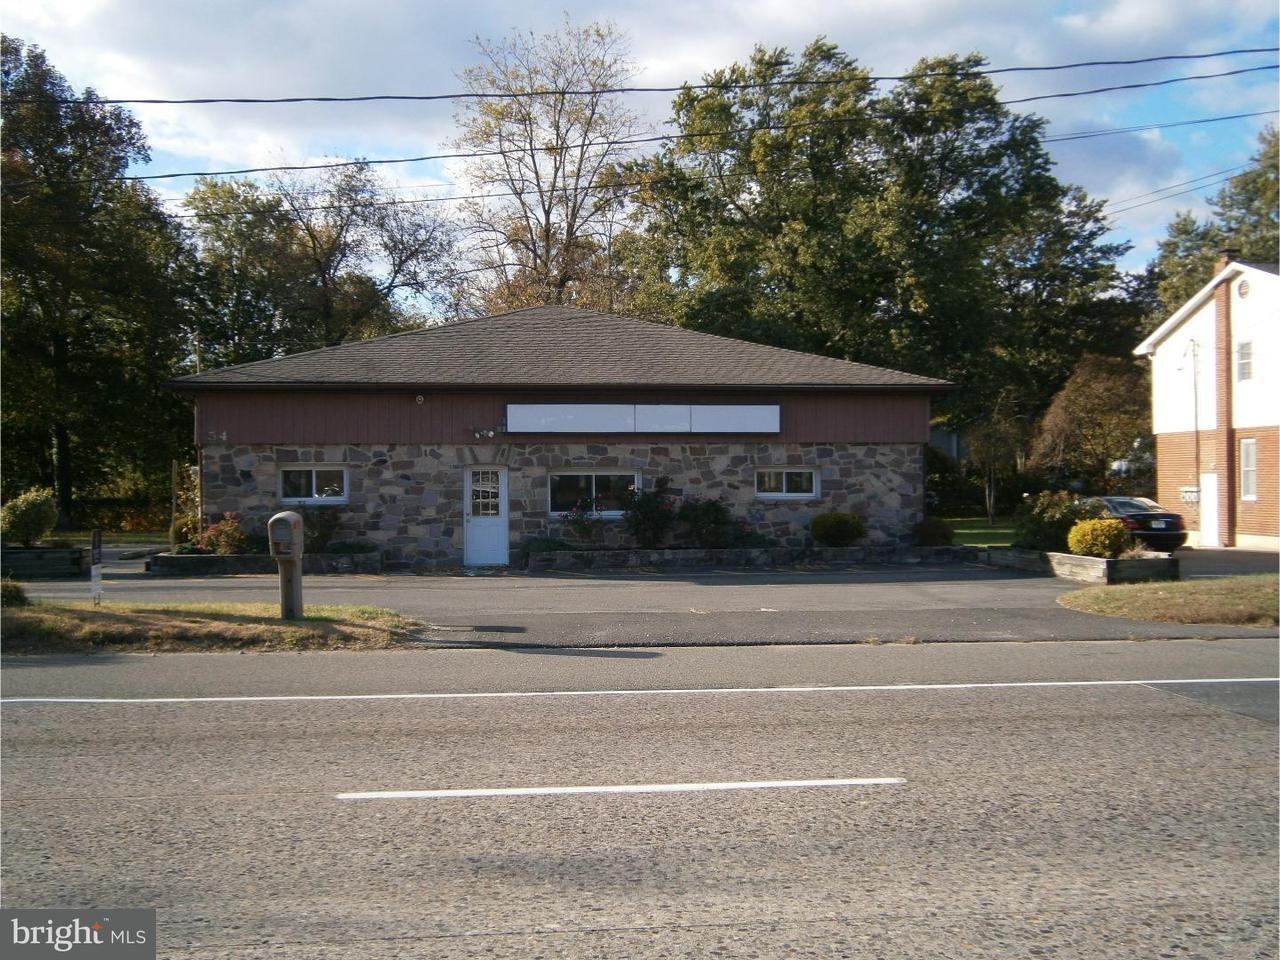 Single Family Home for Sale at 54 ROUTE 130 Bordentown, New Jersey 08620 United States